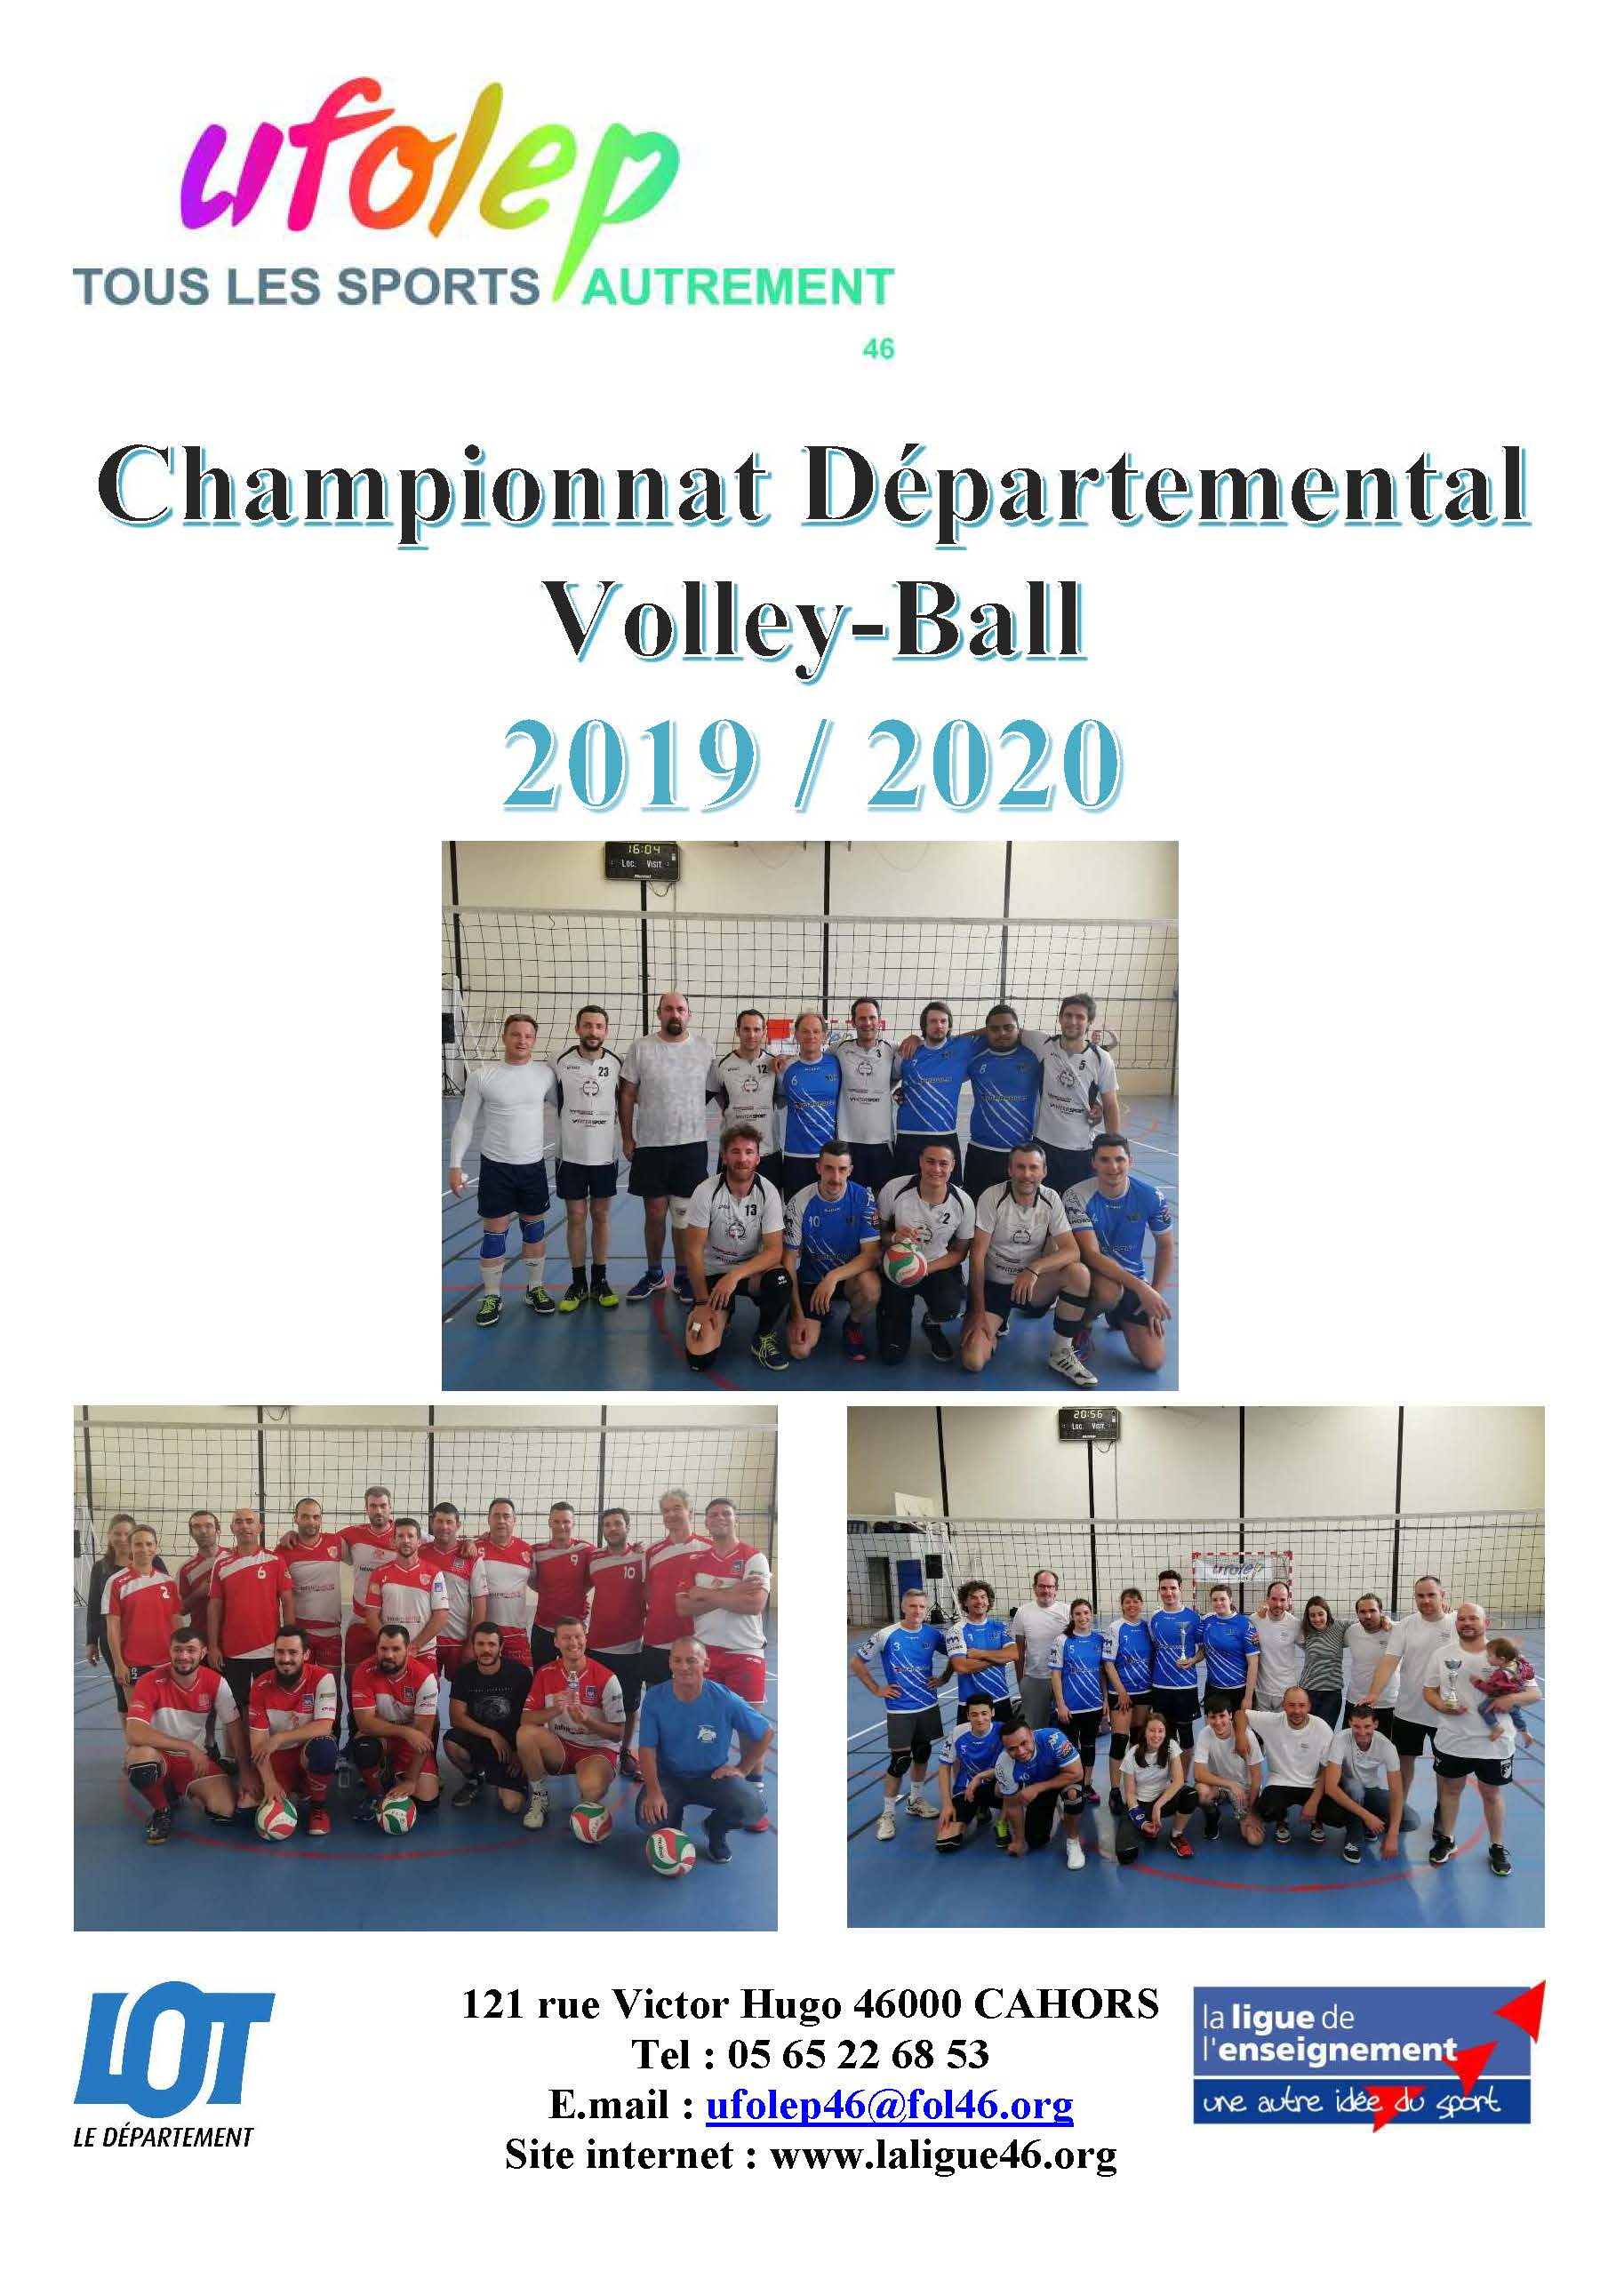 dossier volley 2019 2020 Page 01